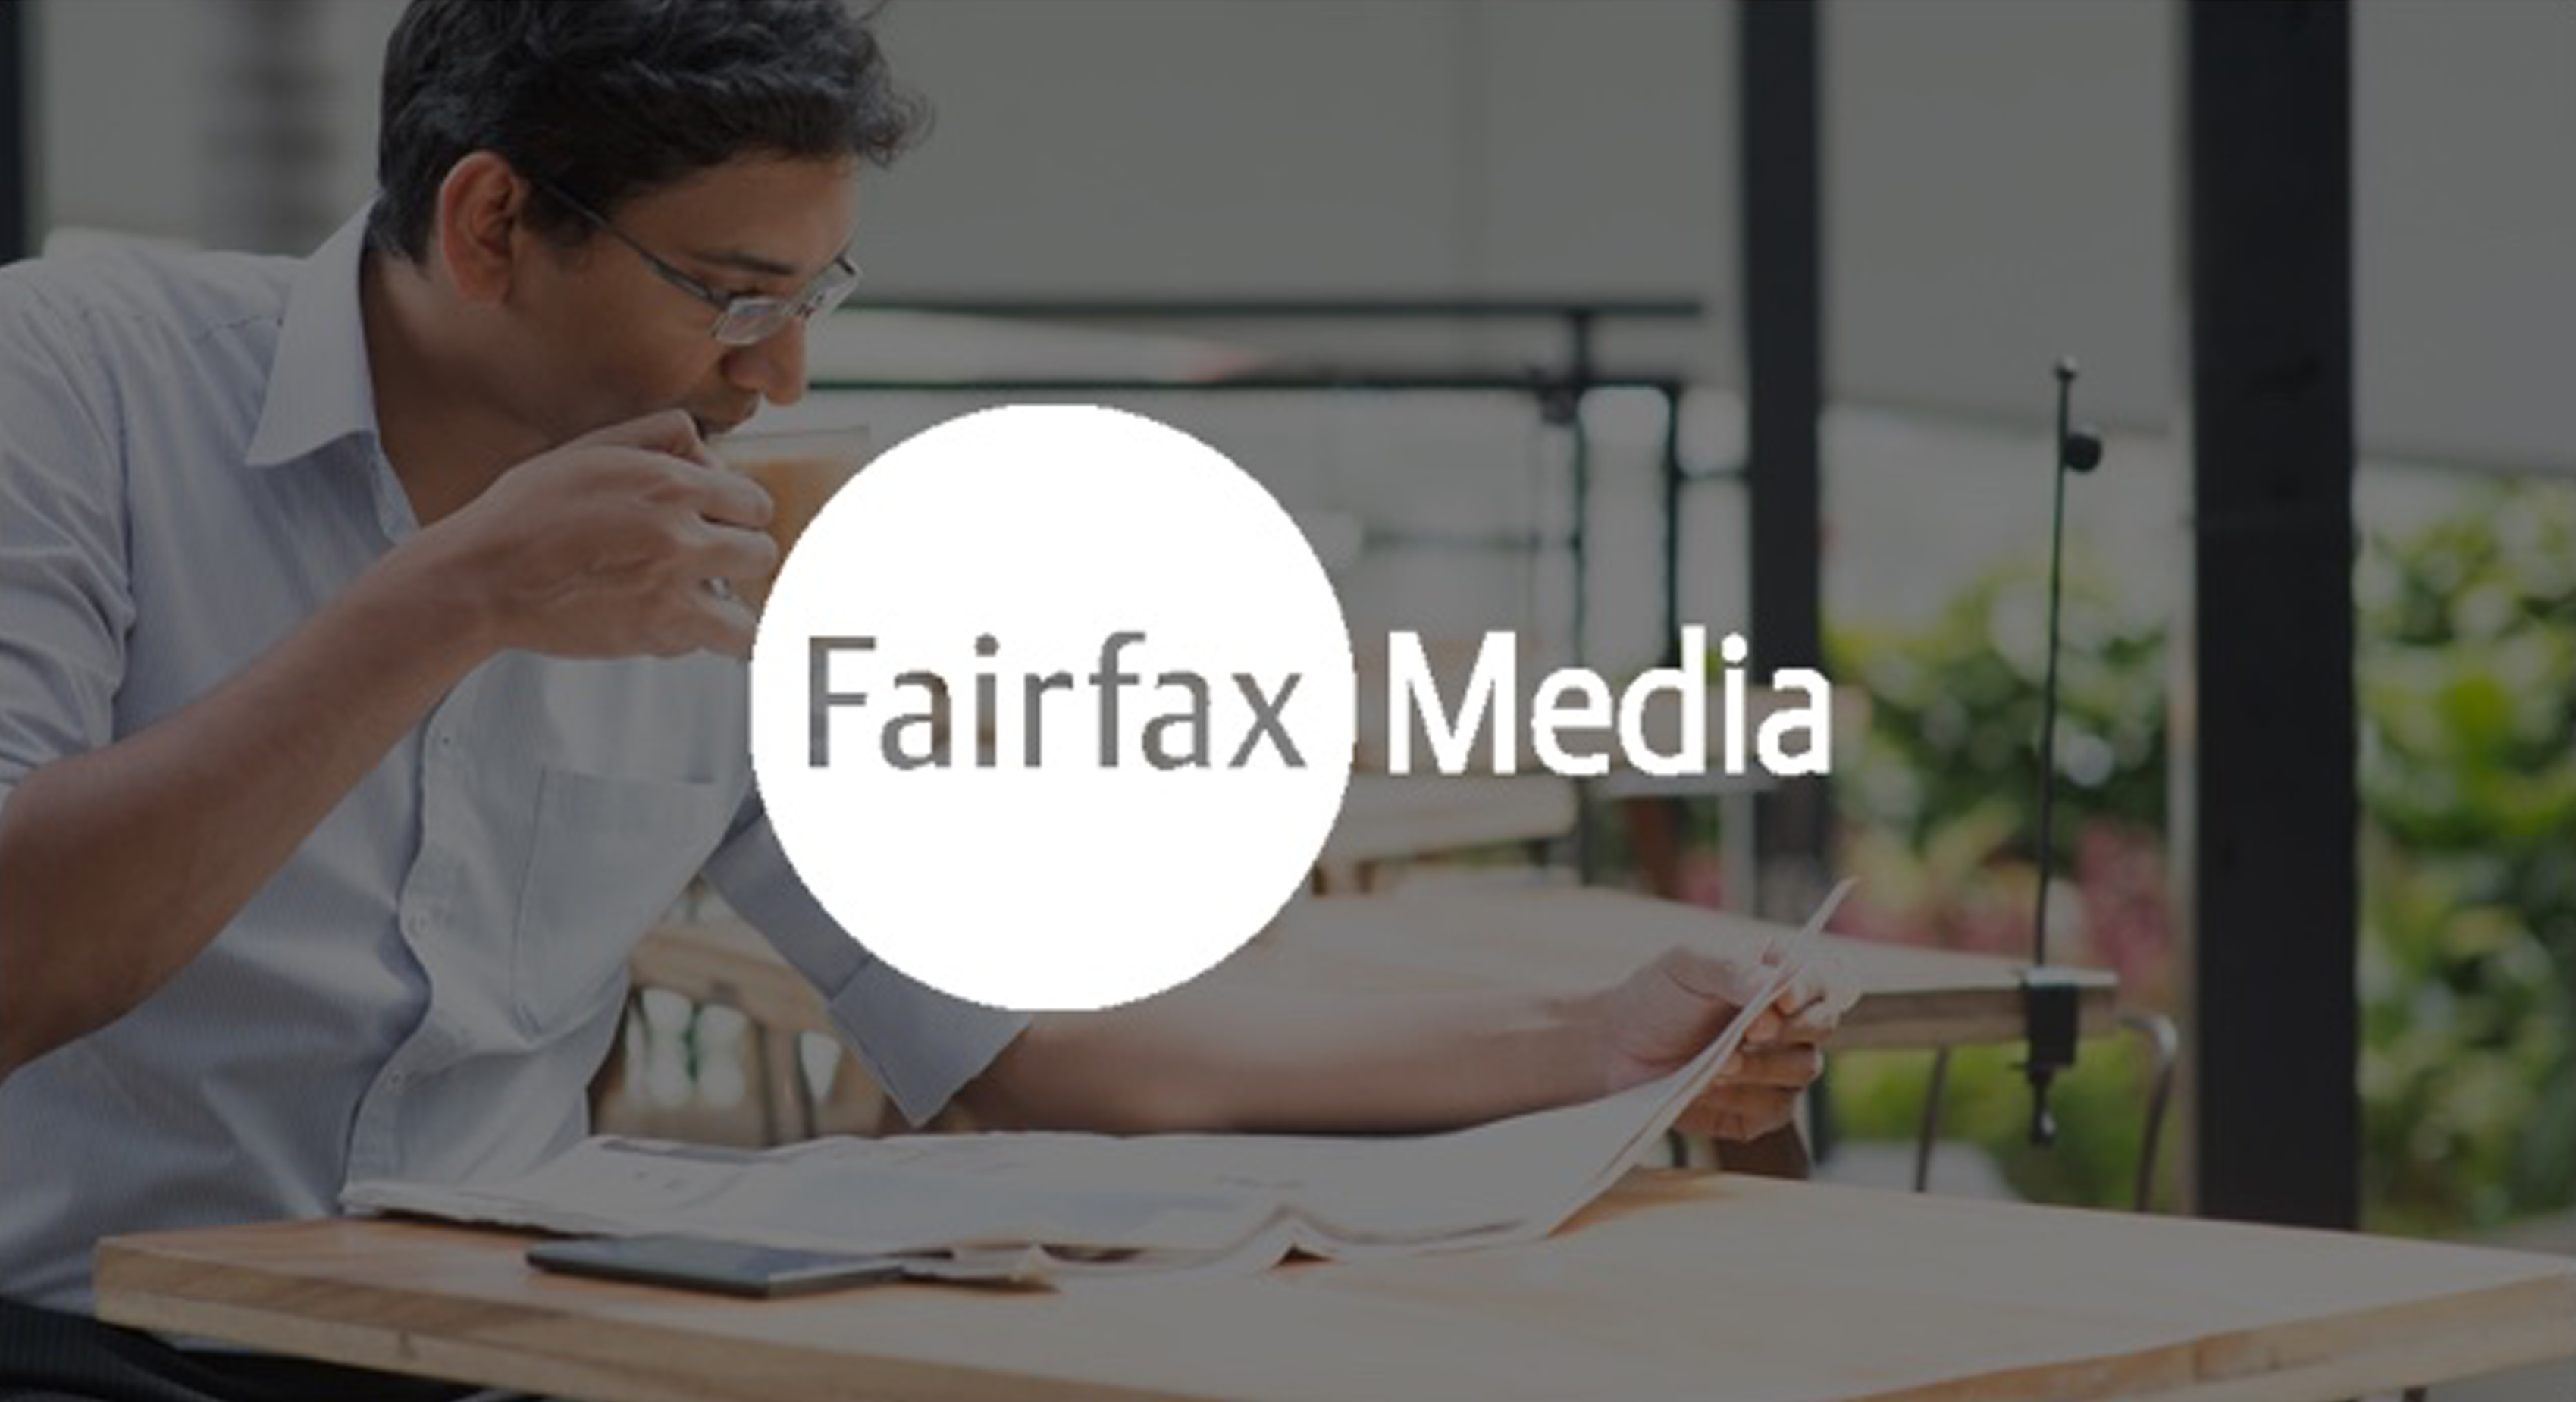 Fairfax Media Adopts SaaS Apps Quickly While Enhancing Security